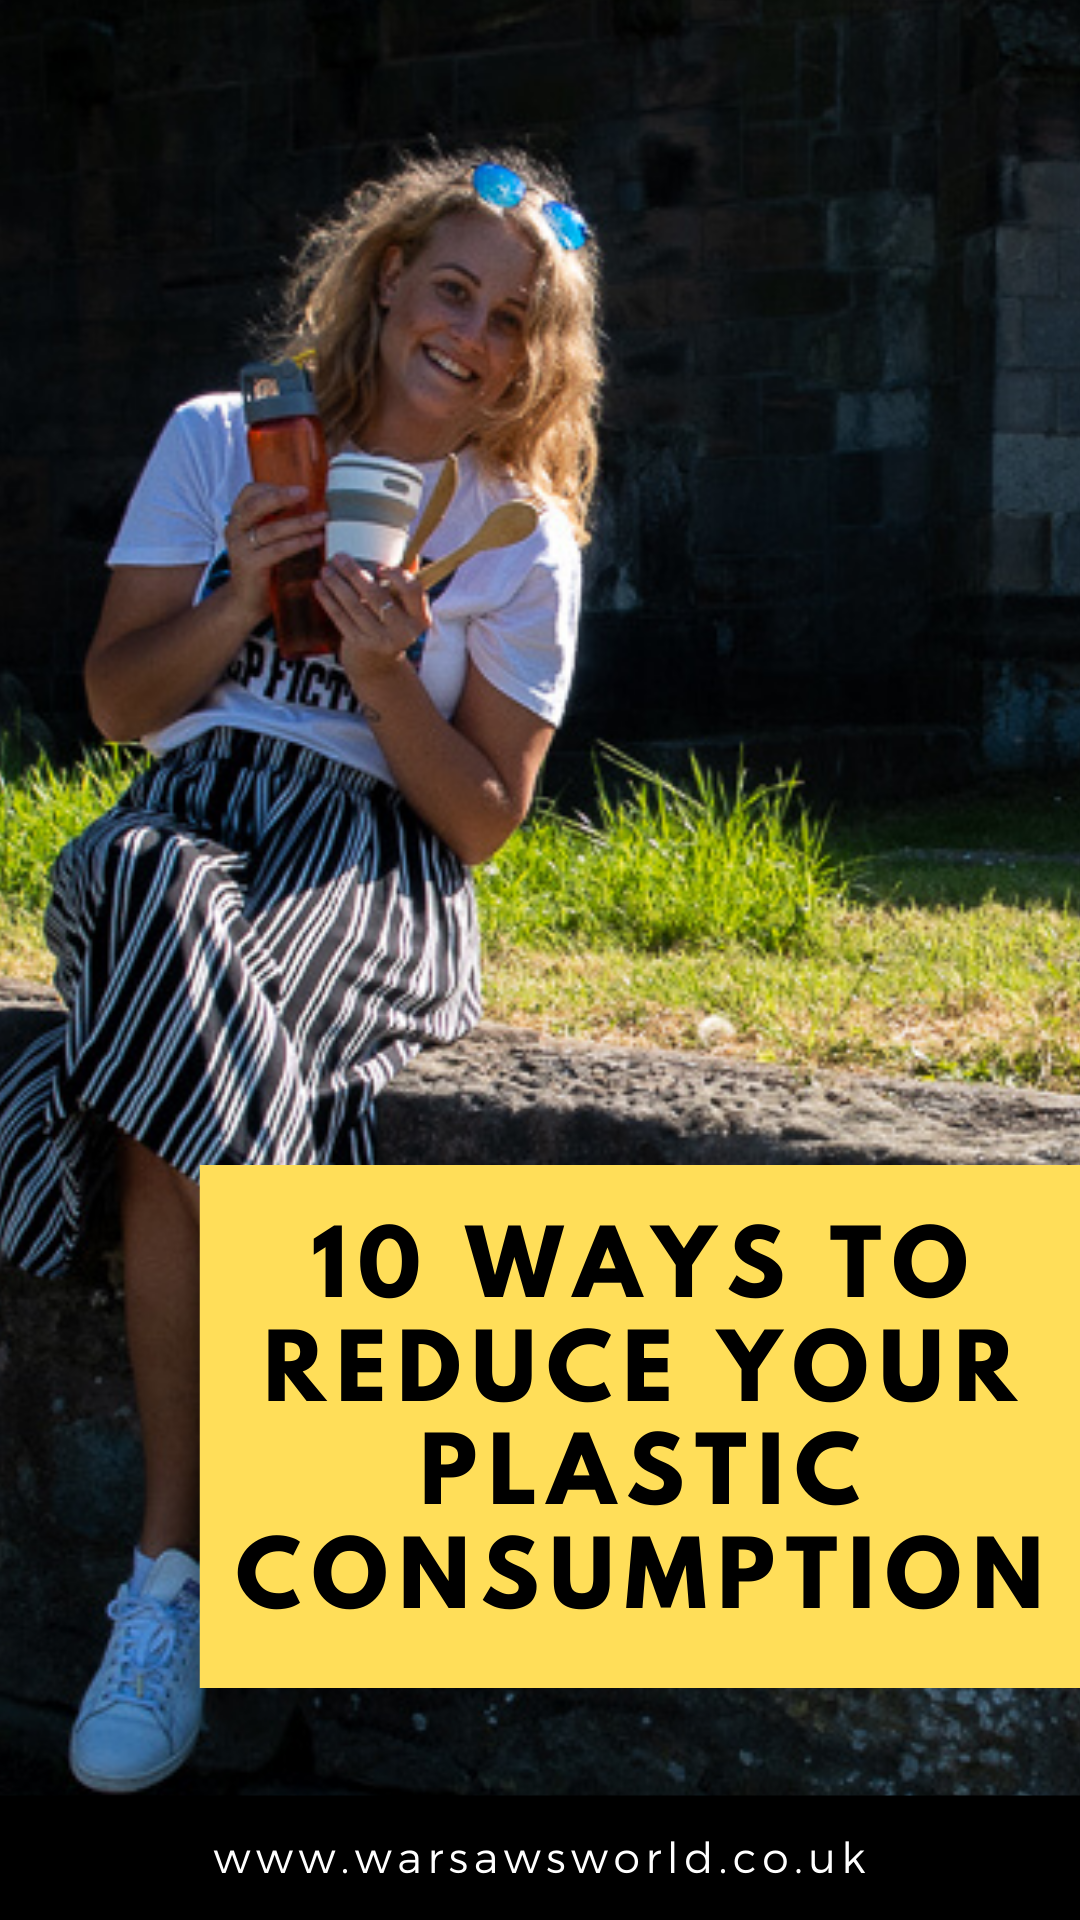 10 ways to reduce your plastic consumption